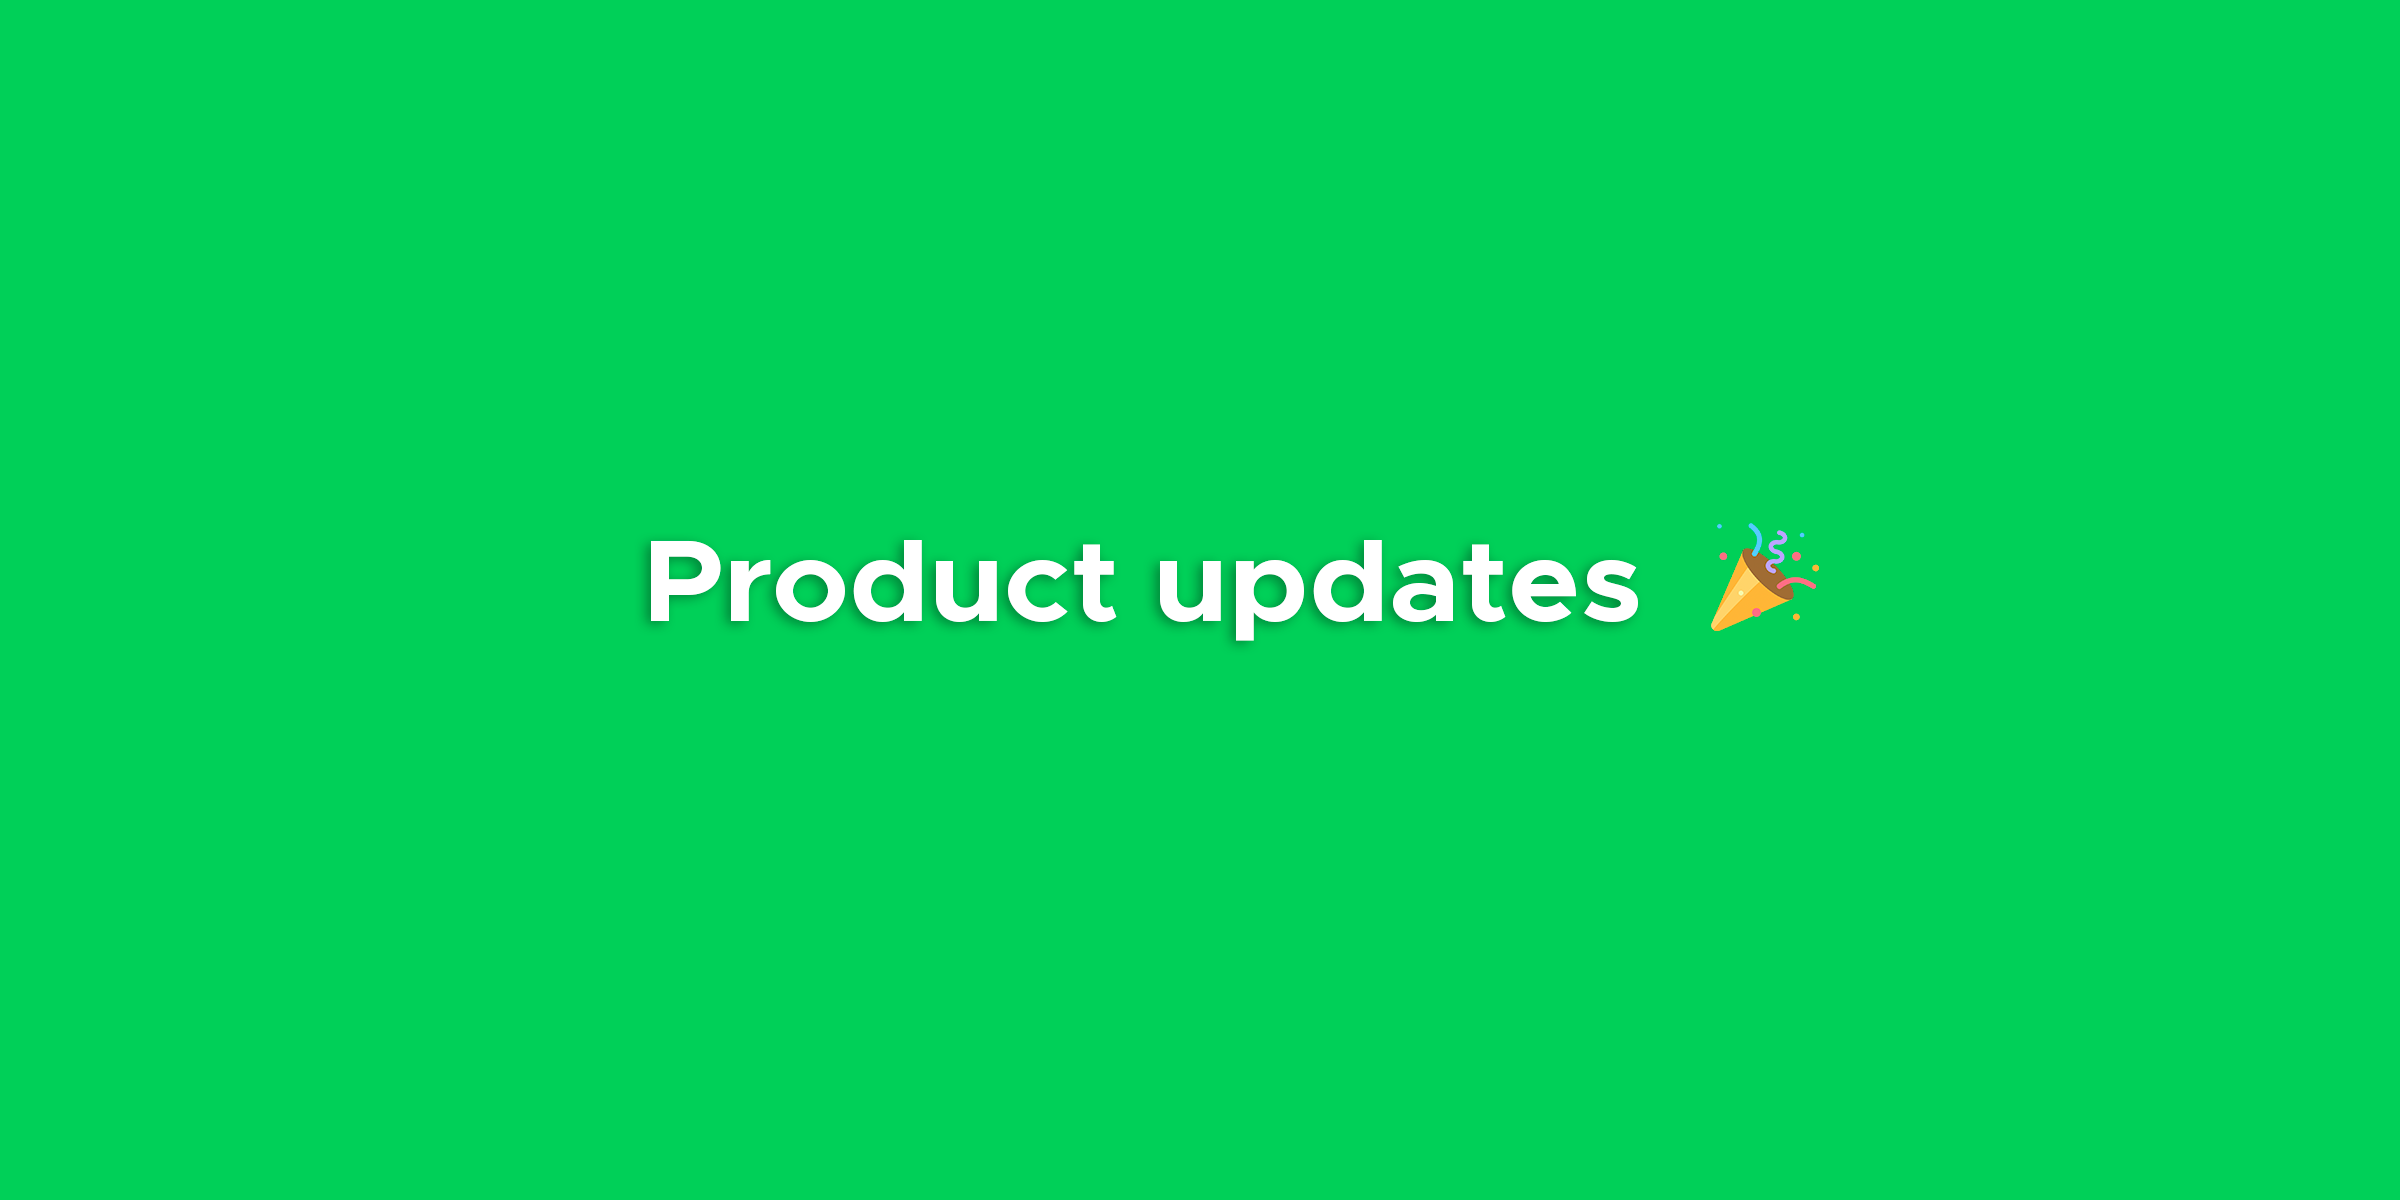 product-updates-banner.png